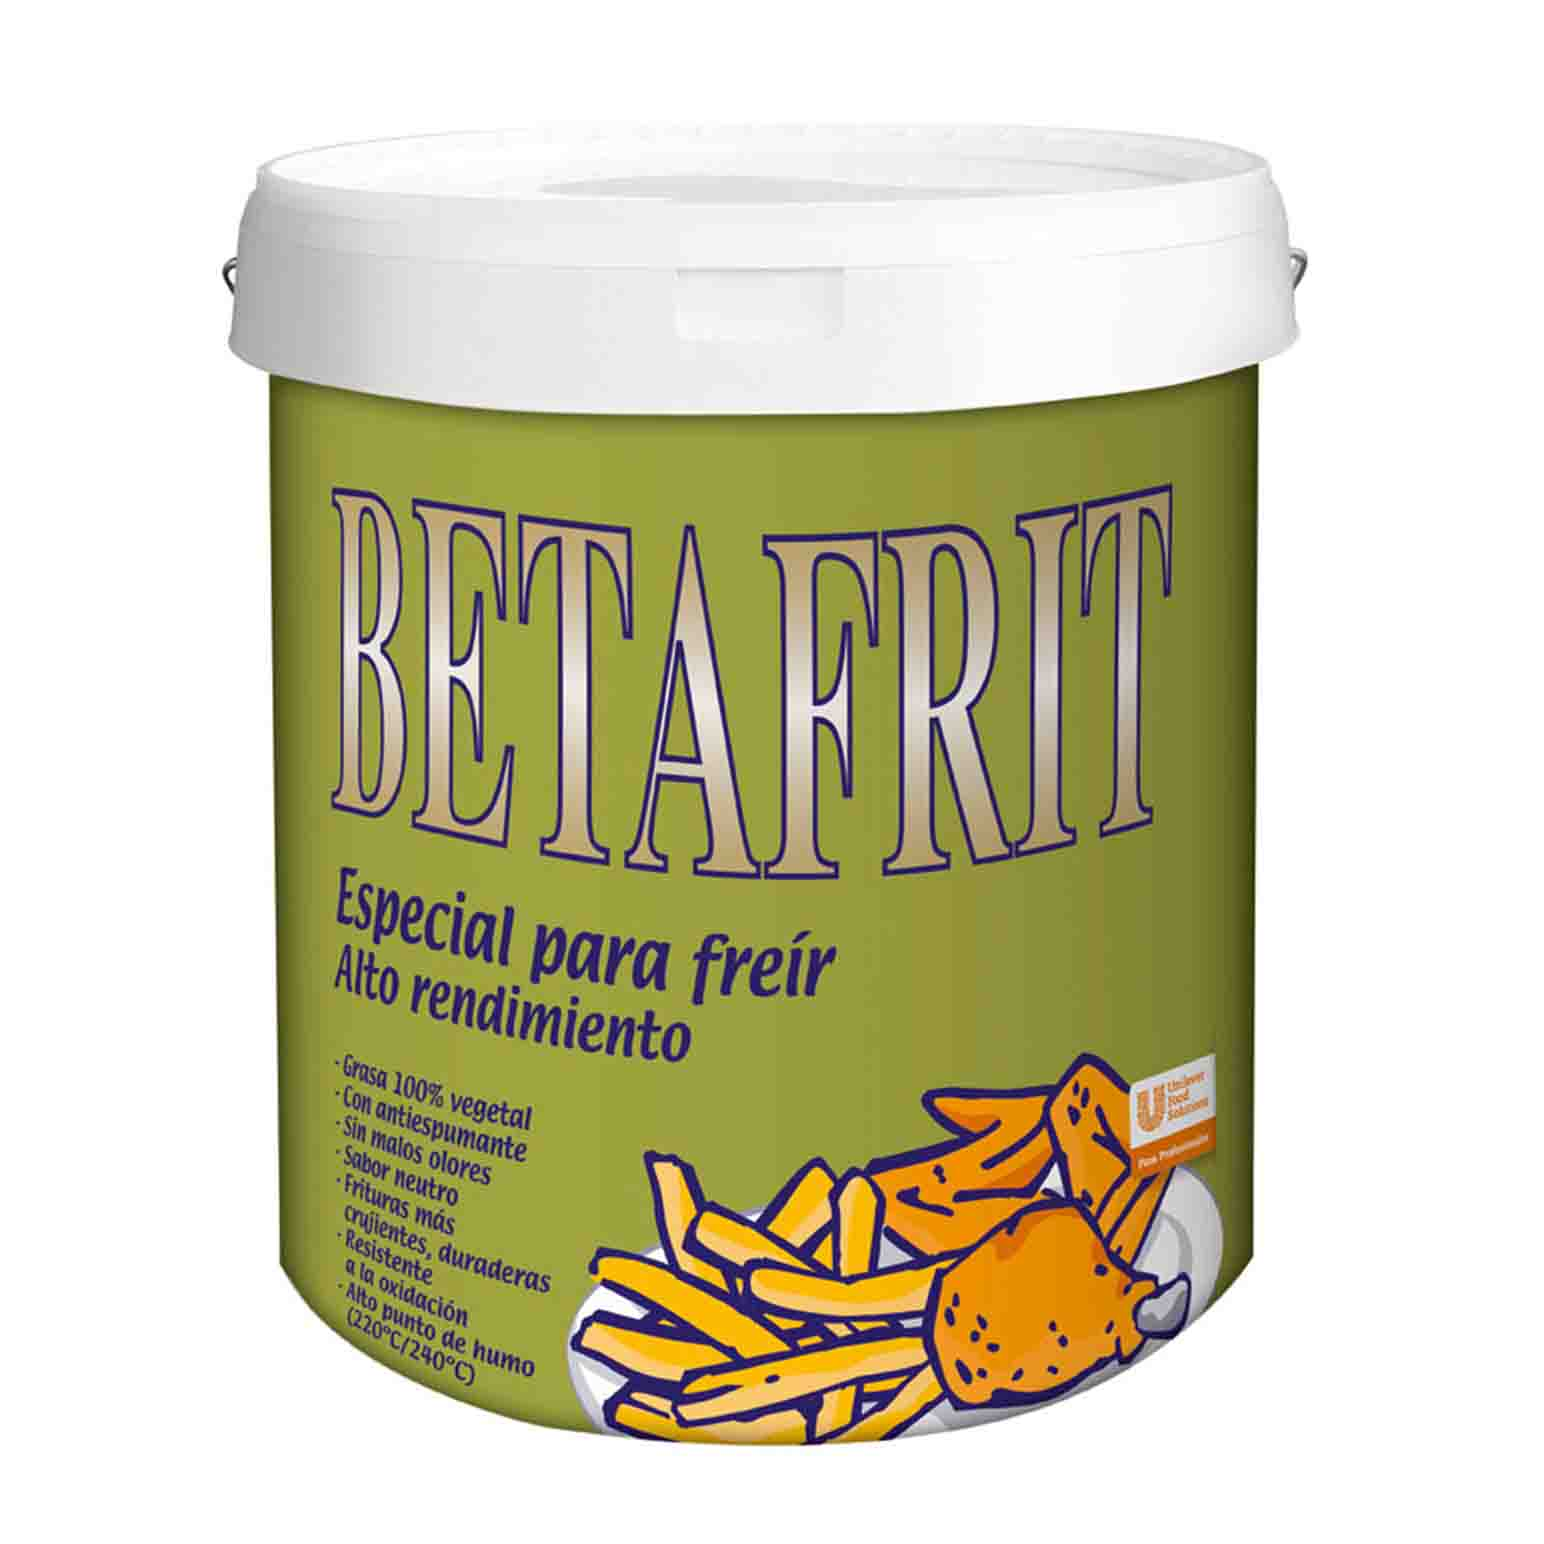 ACEITE BETA FRIT 10 L.